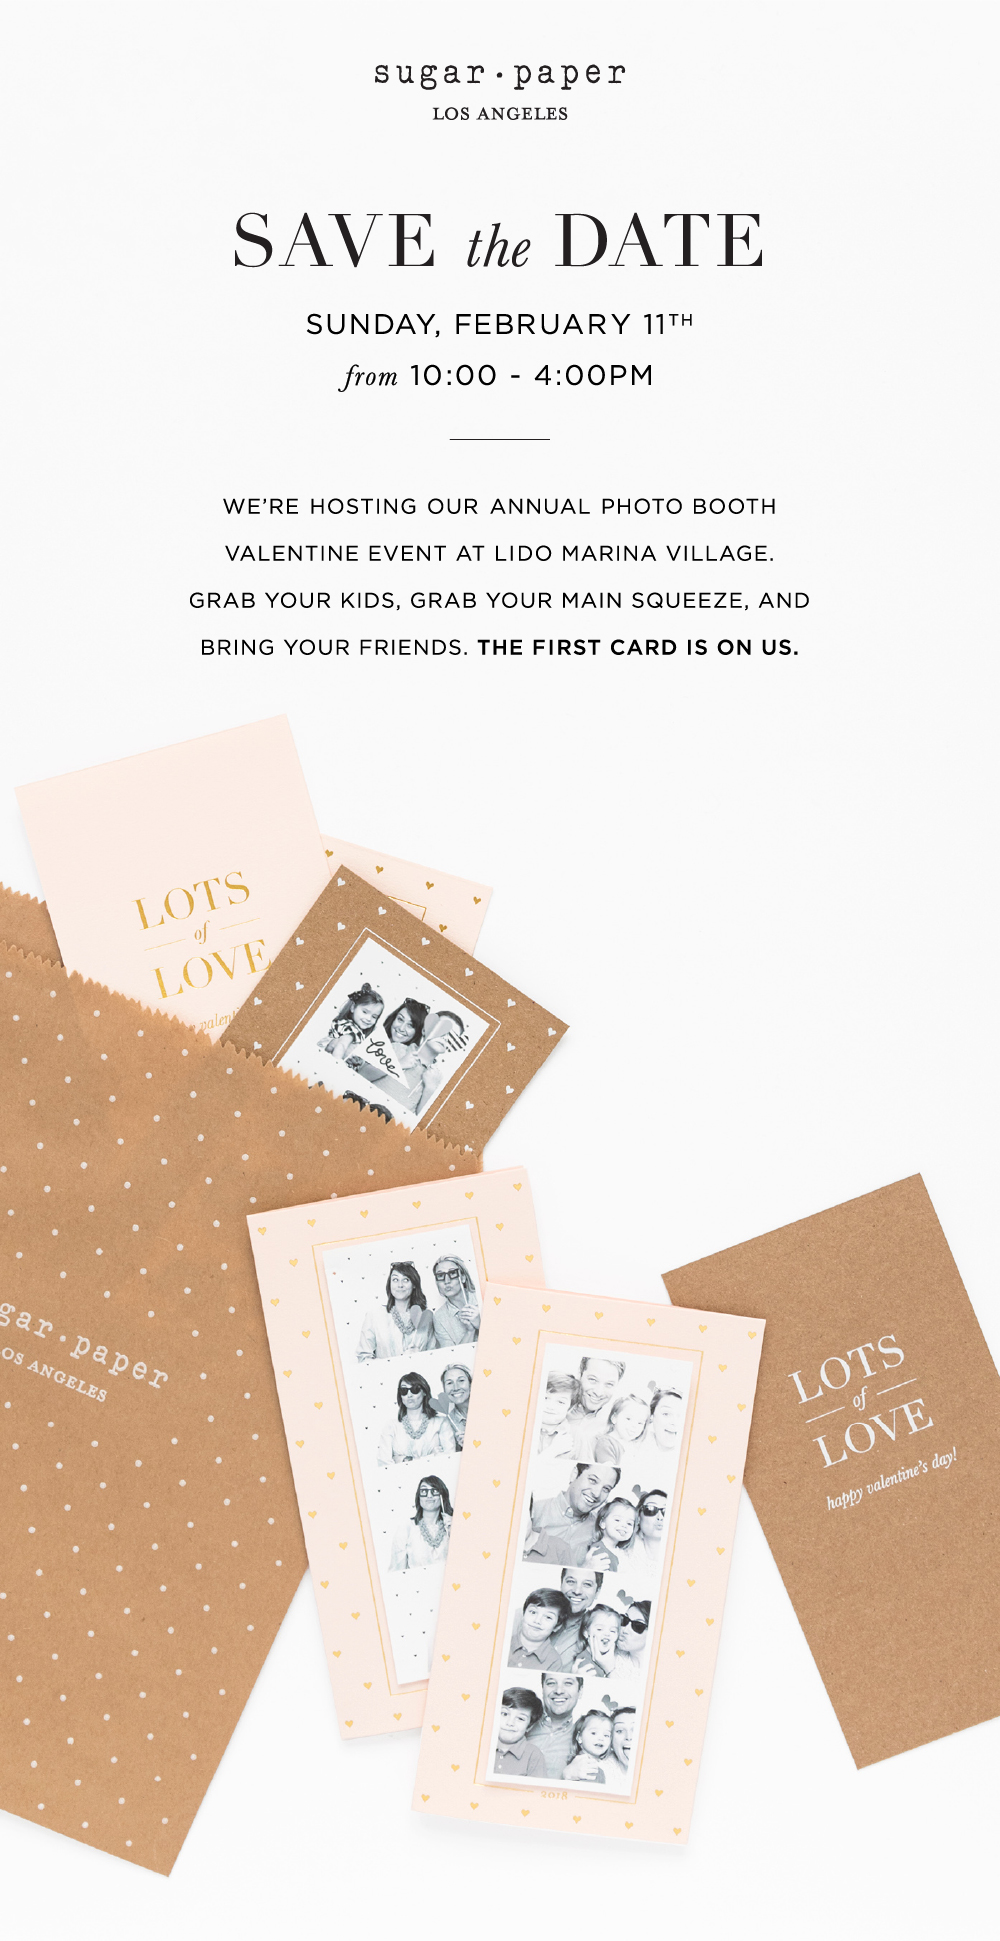 Sugar-Paper-Valentine-Photobooth-Email-NEWPORT-BEACH.JPG